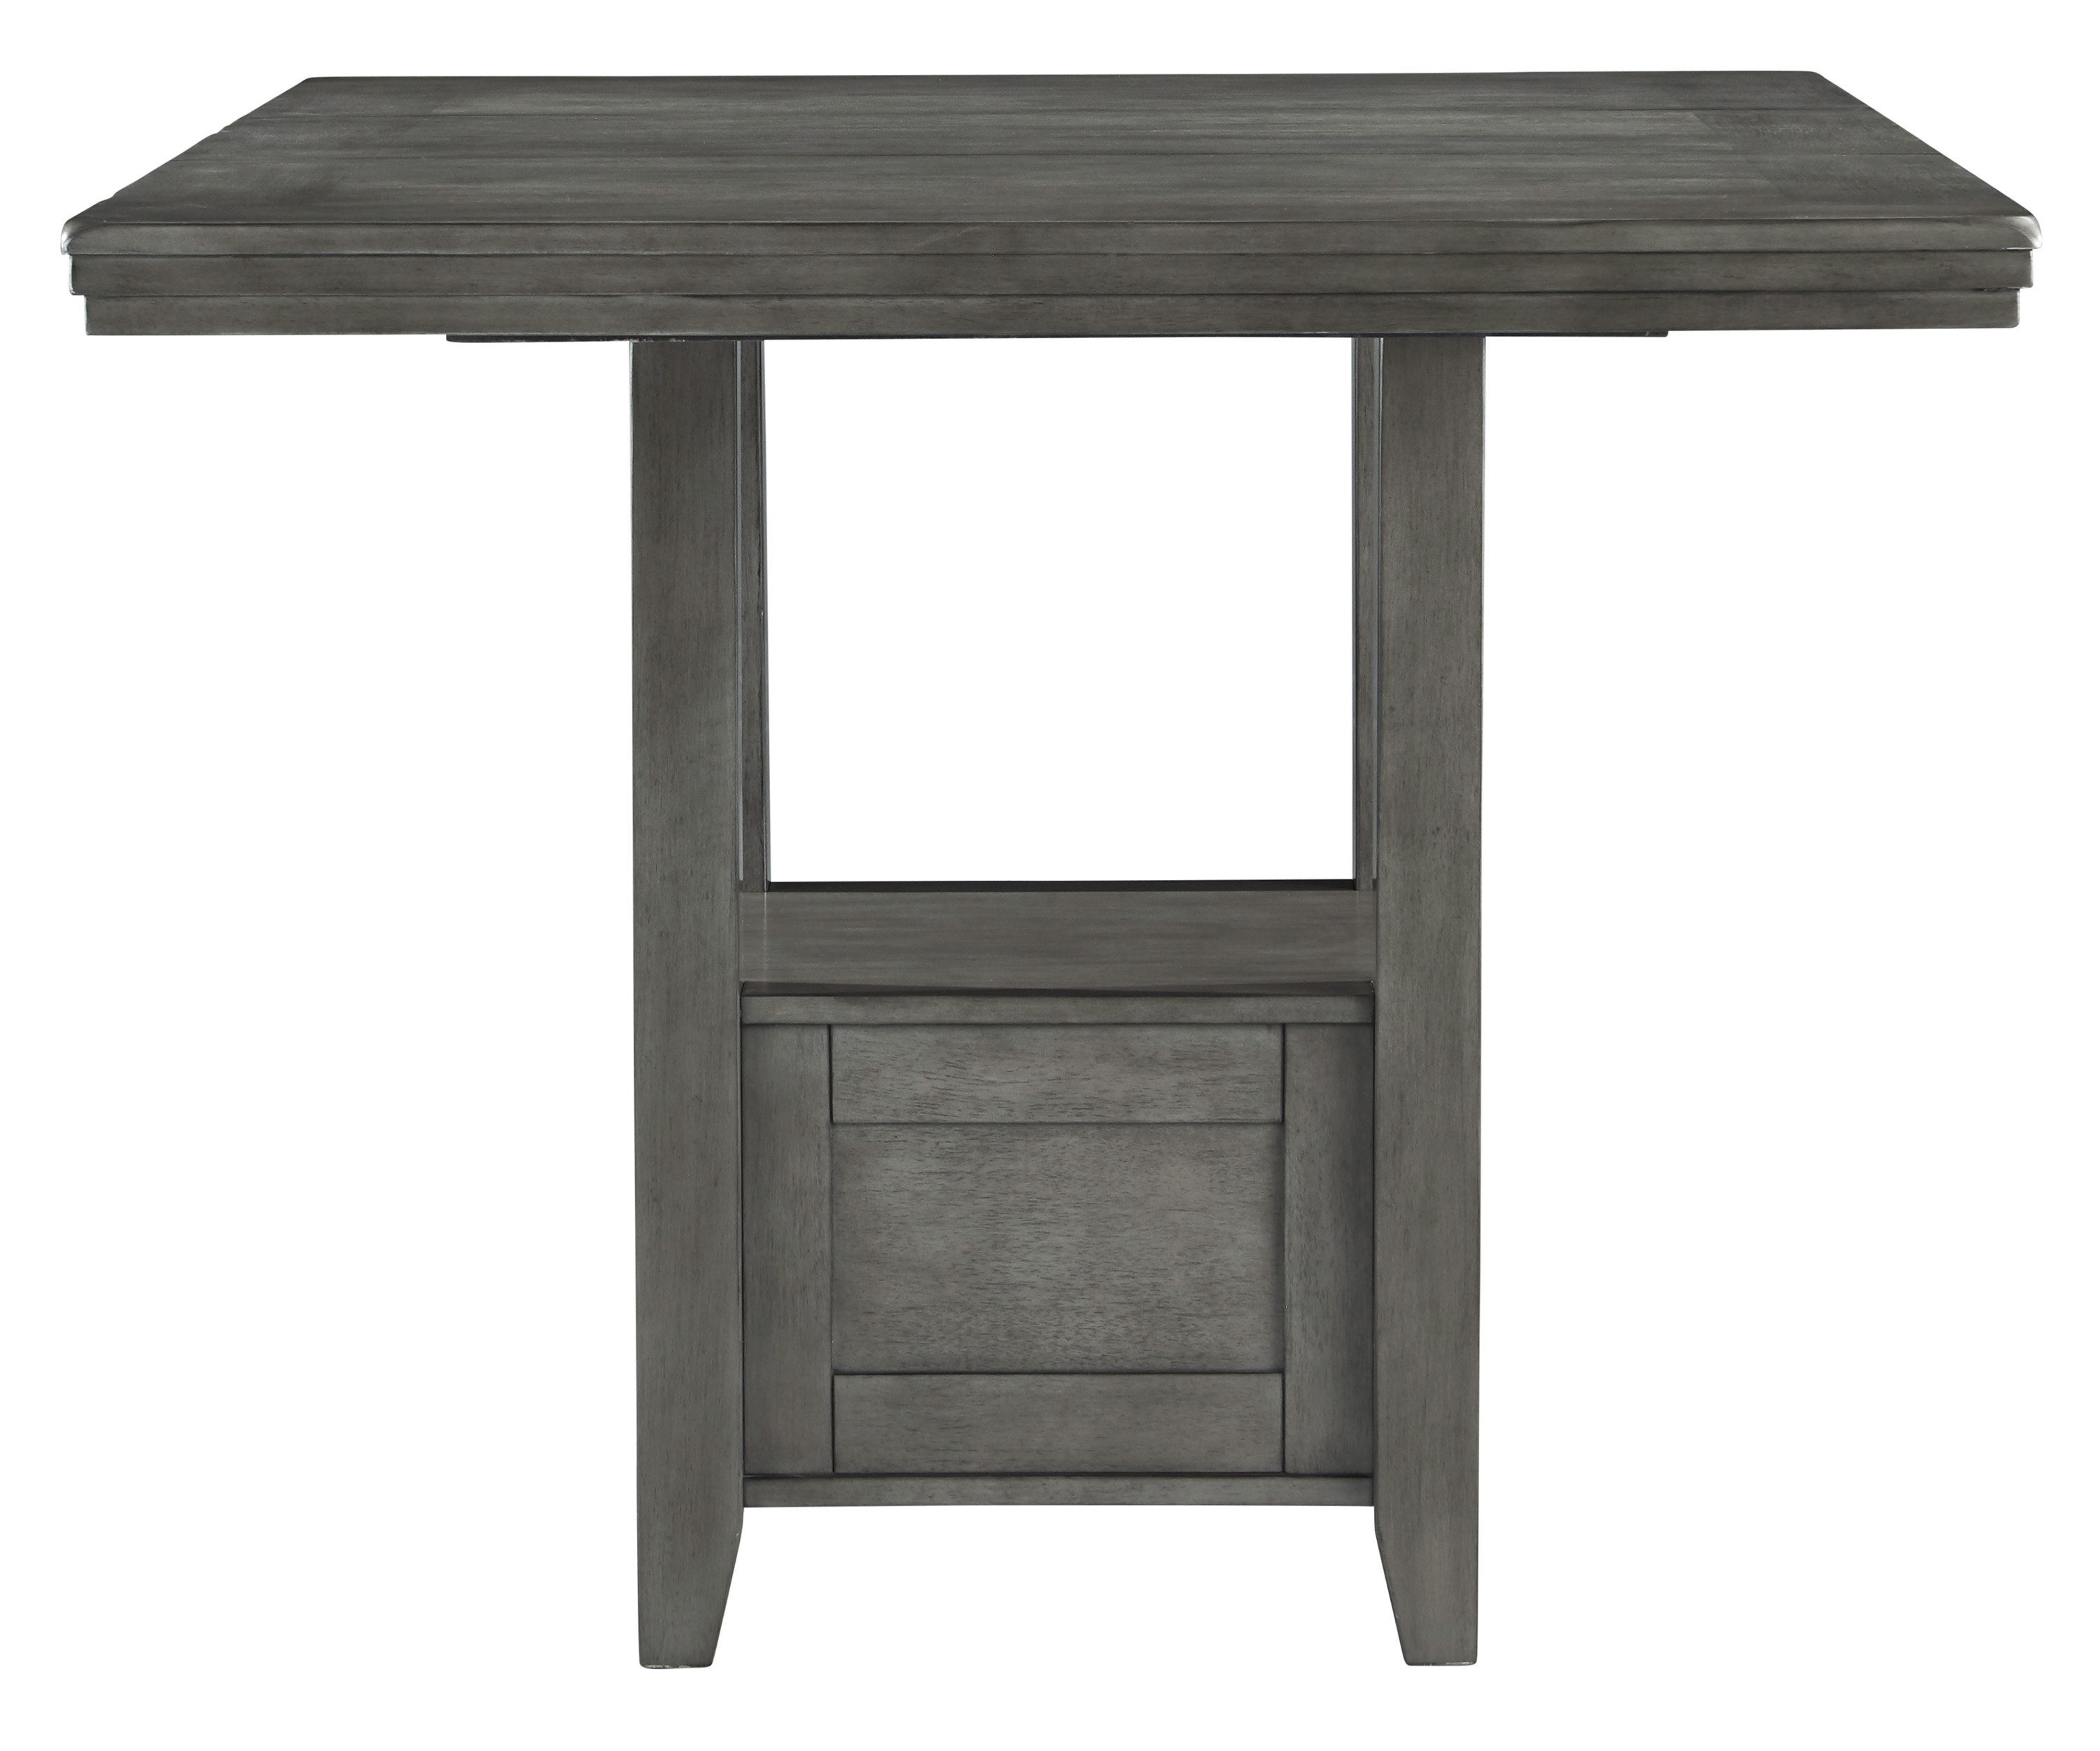 Hallanden Dining Tables by Signature Design by Ashley at Standard Furniture